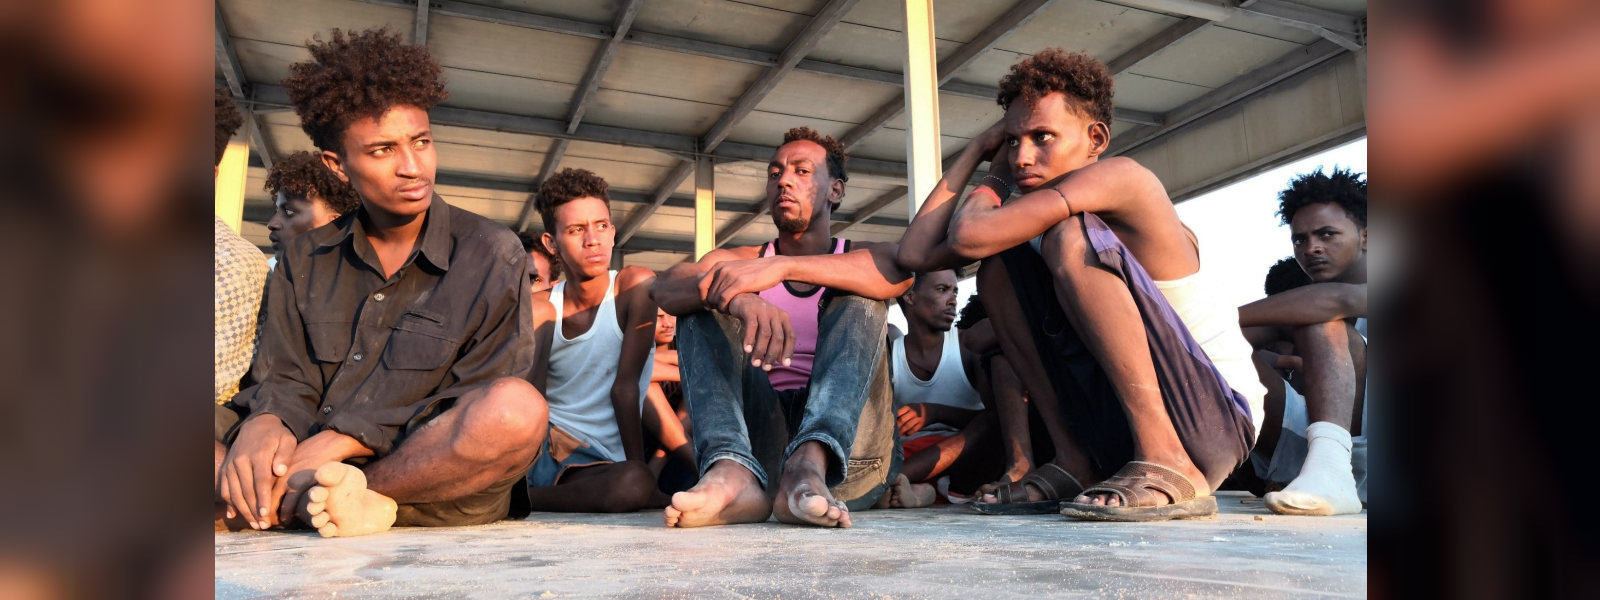 Libya to shut down three migrant detention centers